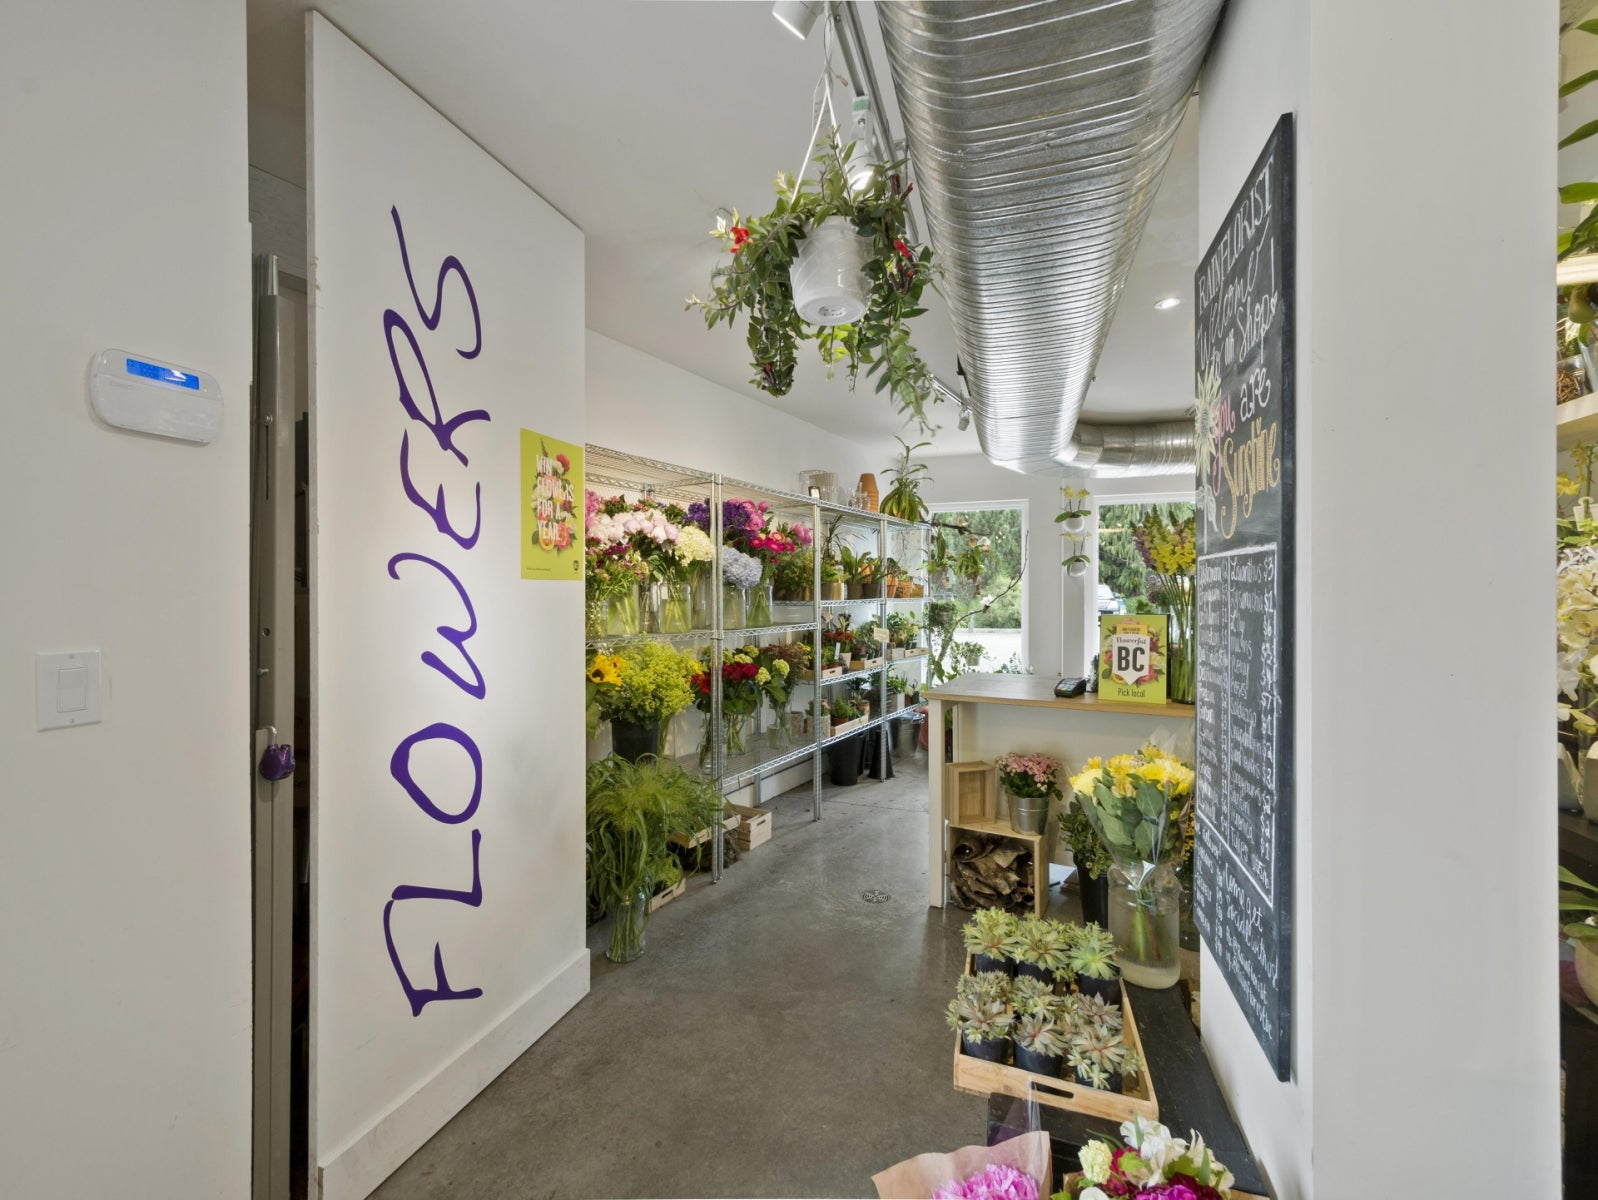 MARKET FLOWER SHOP      1 - 473 Gower Point Road, Gibsons BC V0N1V0 - Gibsons & Area COMM for sale(C8019459) #6